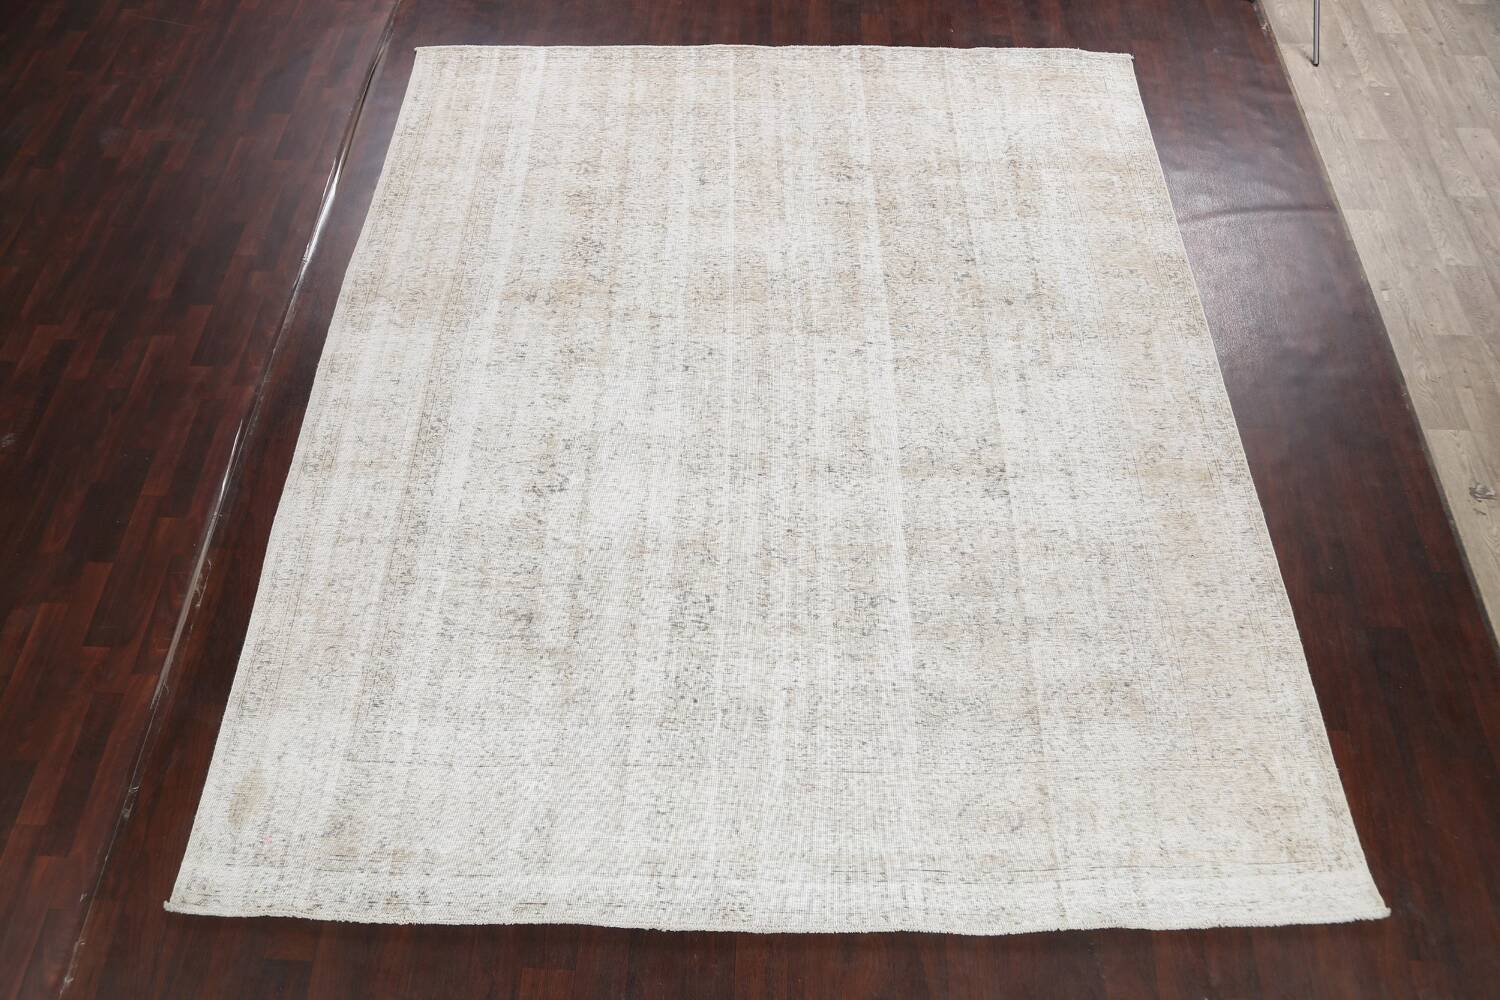 Antique Muted Vintage Distressed Oriental Area Rug 10x11 image 2